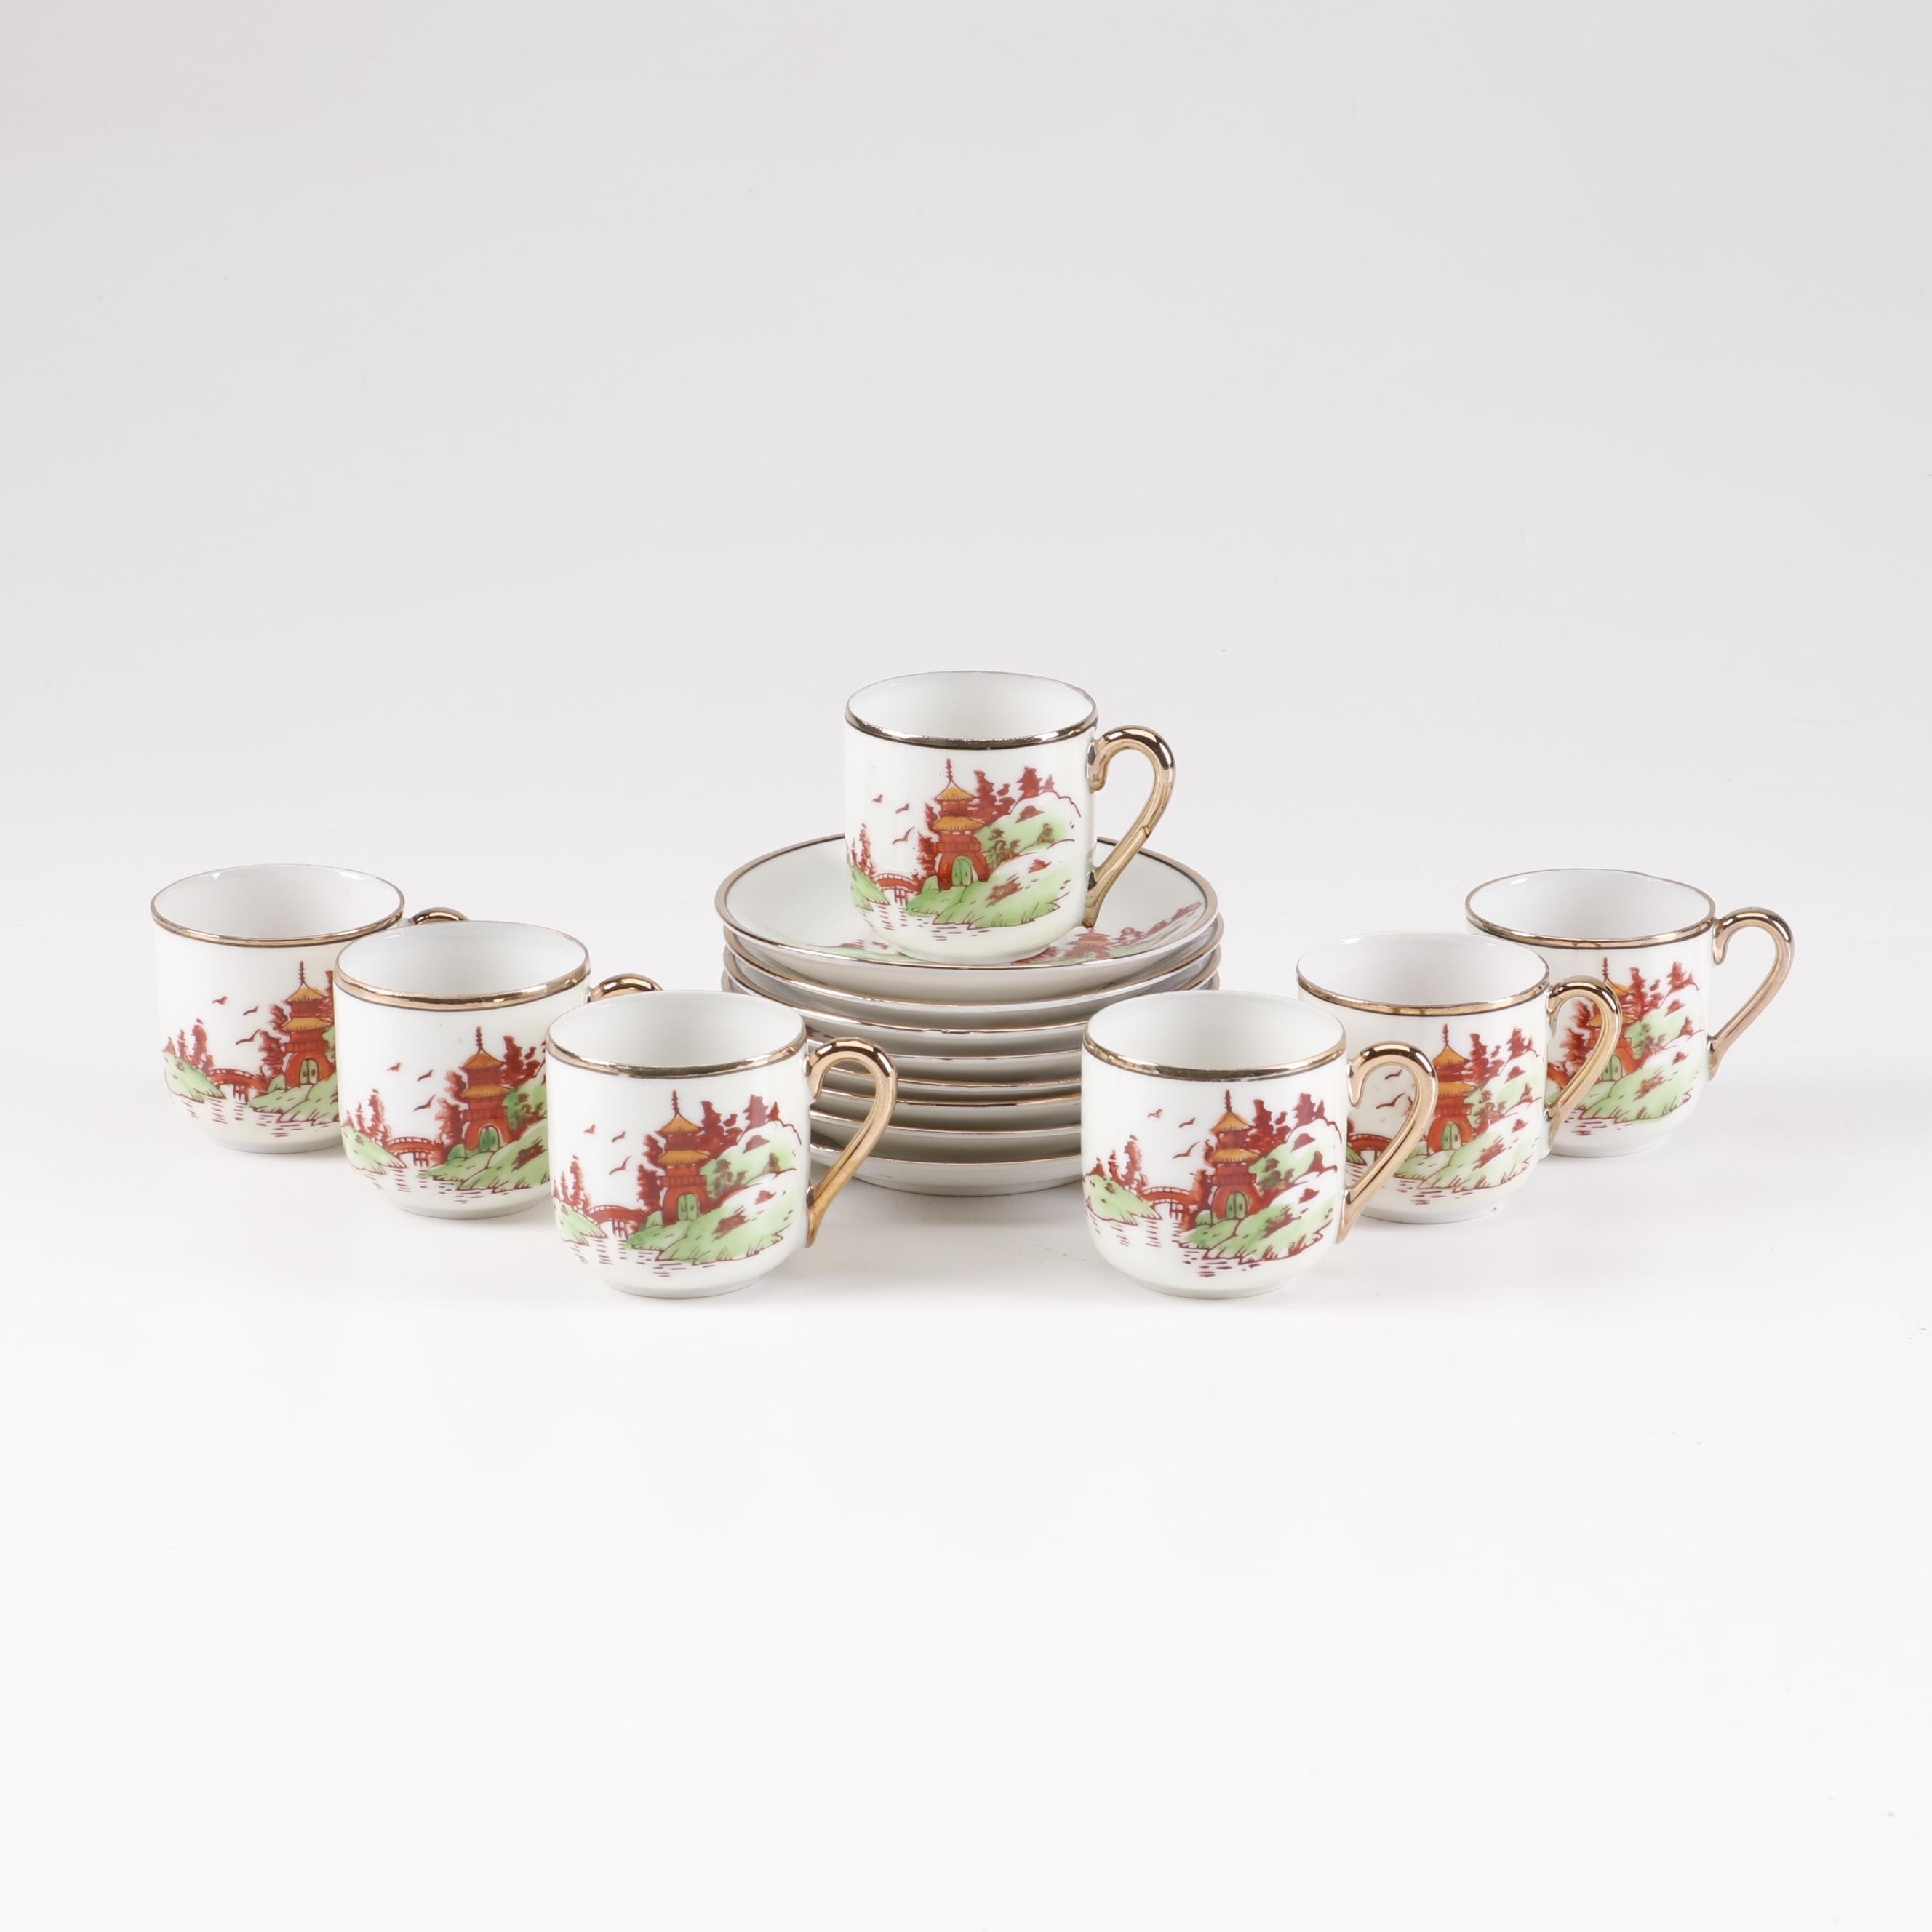 Chikaramachi Hand Painted Japanese Teacups and Saucers